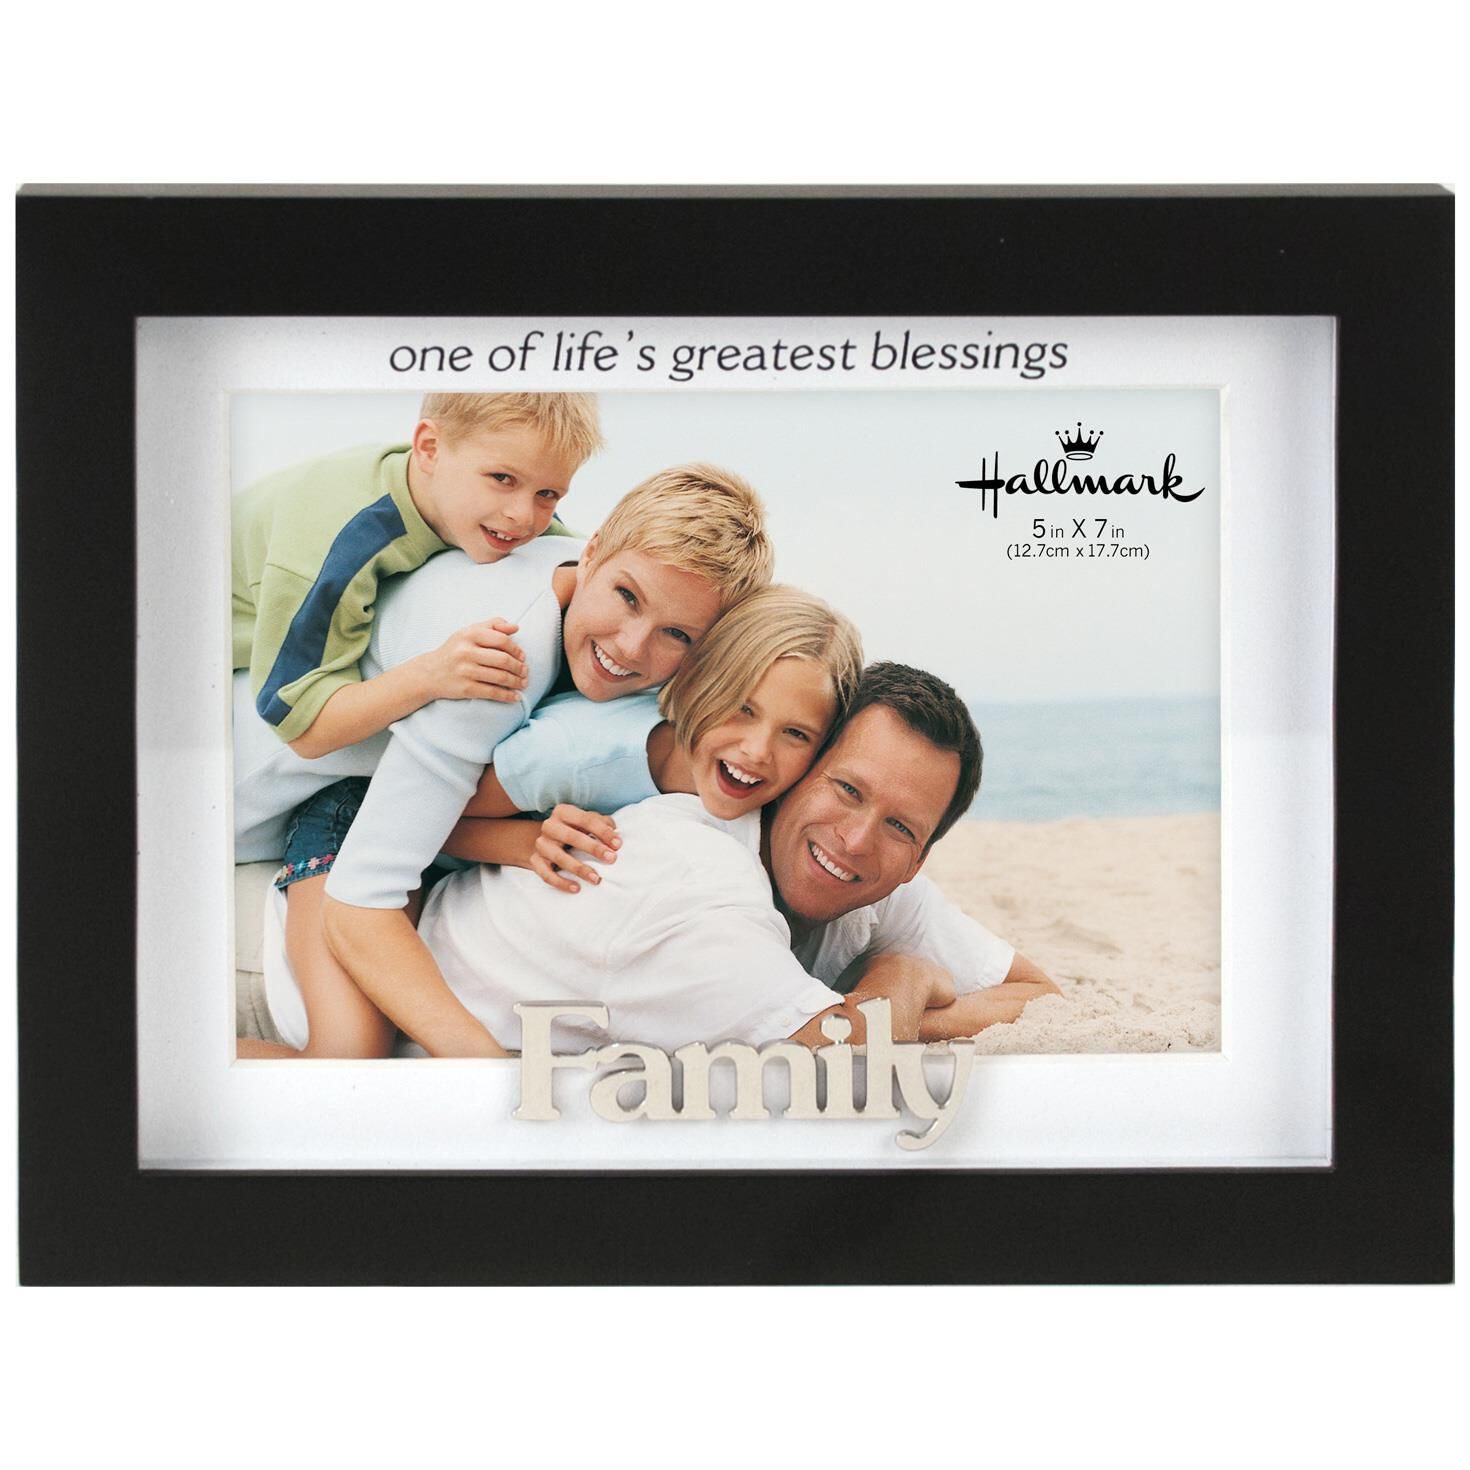 Family blessings matted wood photo frame 5x7 picture frames family blessings matted wood photo frame 5x7 picture frames hallmark jeuxipadfo Gallery